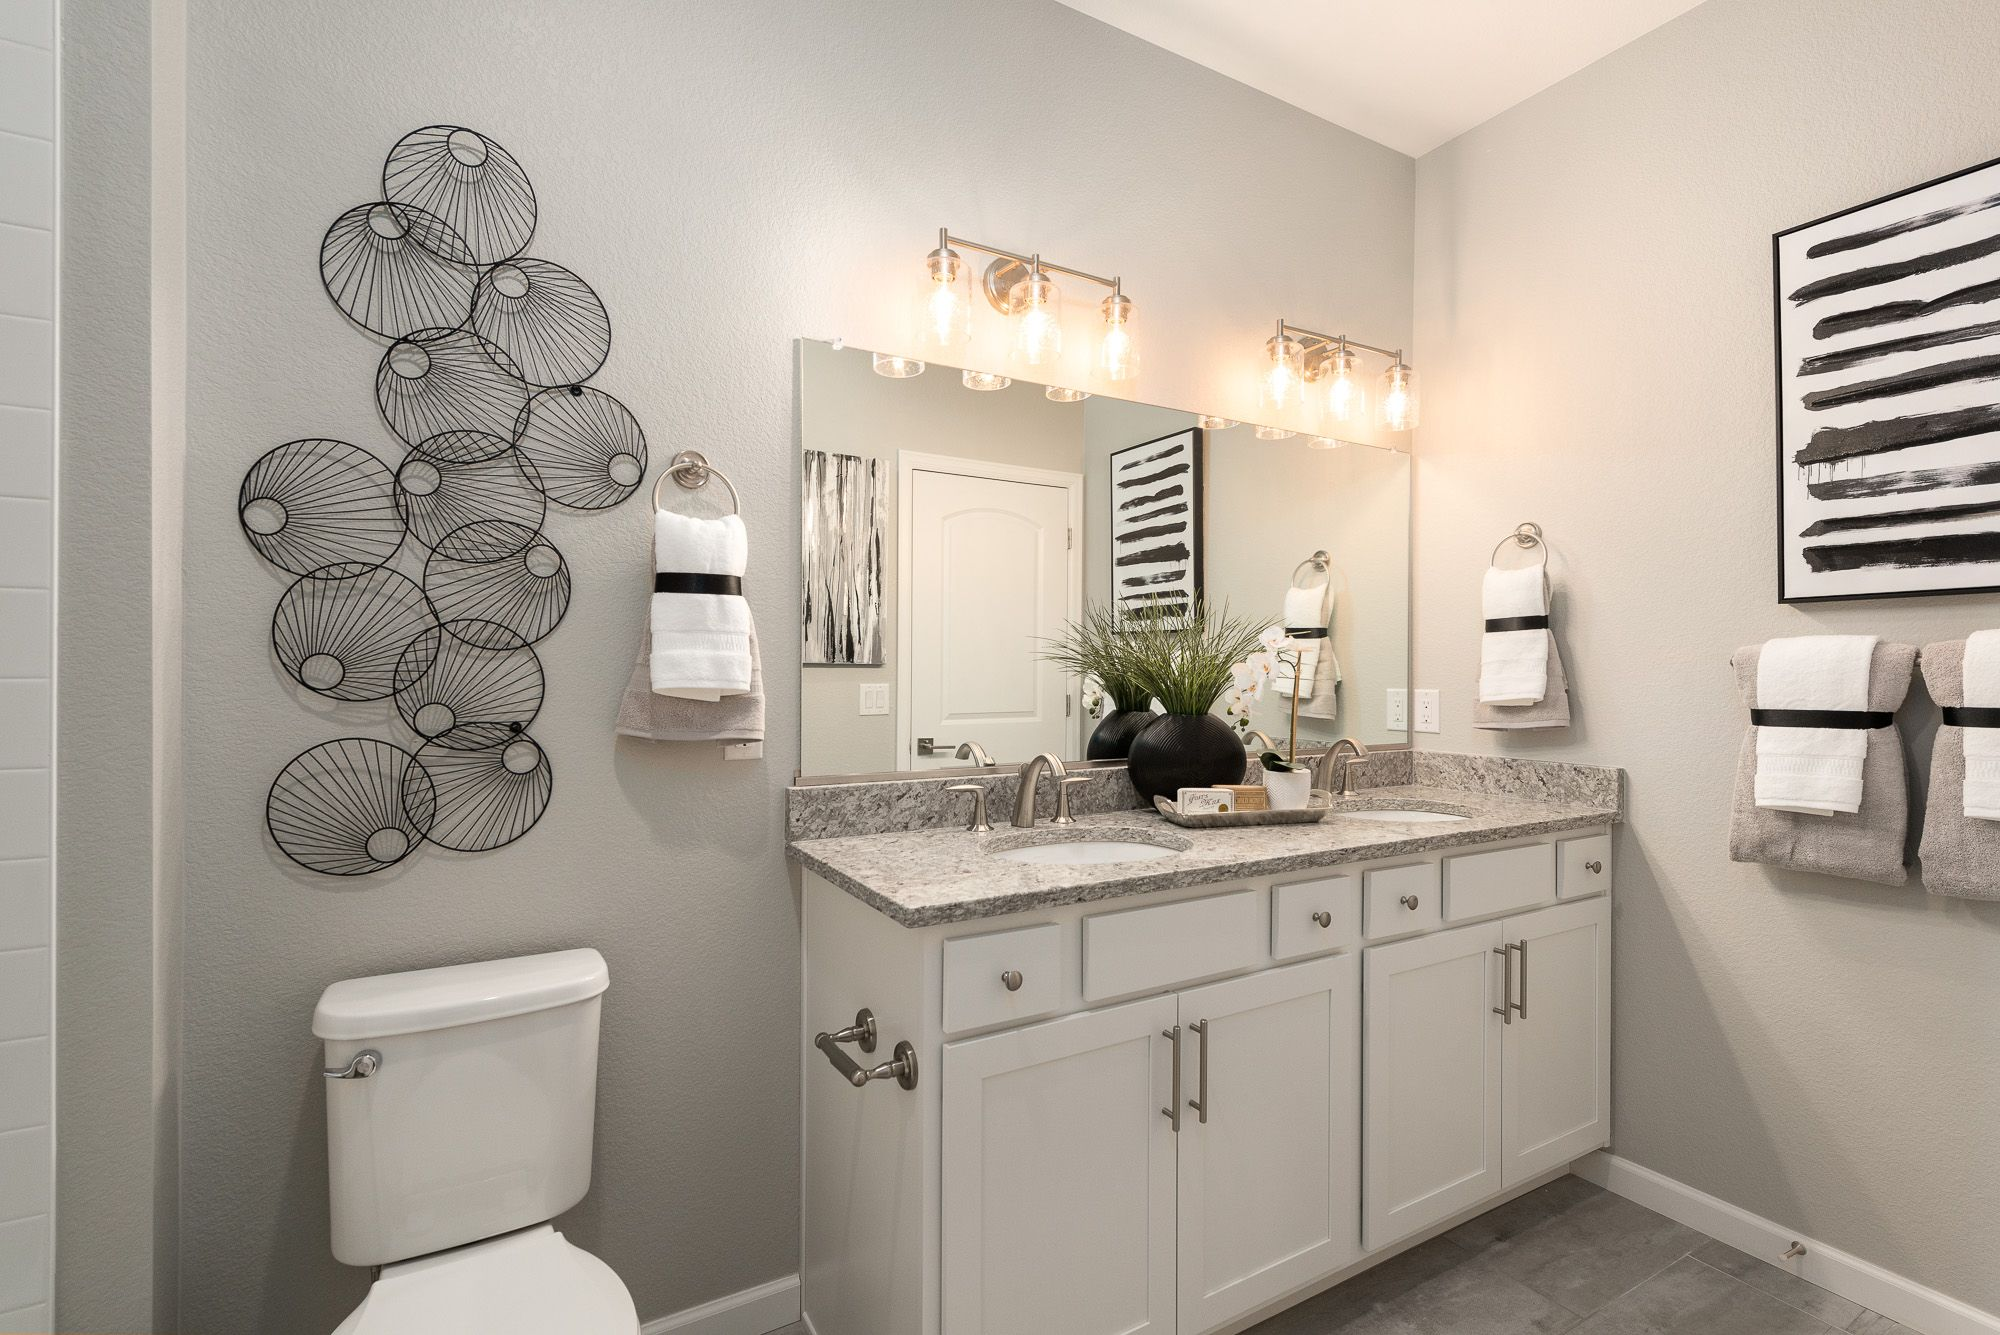 Bathroom featured in the Aiden By Lokal Homes in Denver, CO